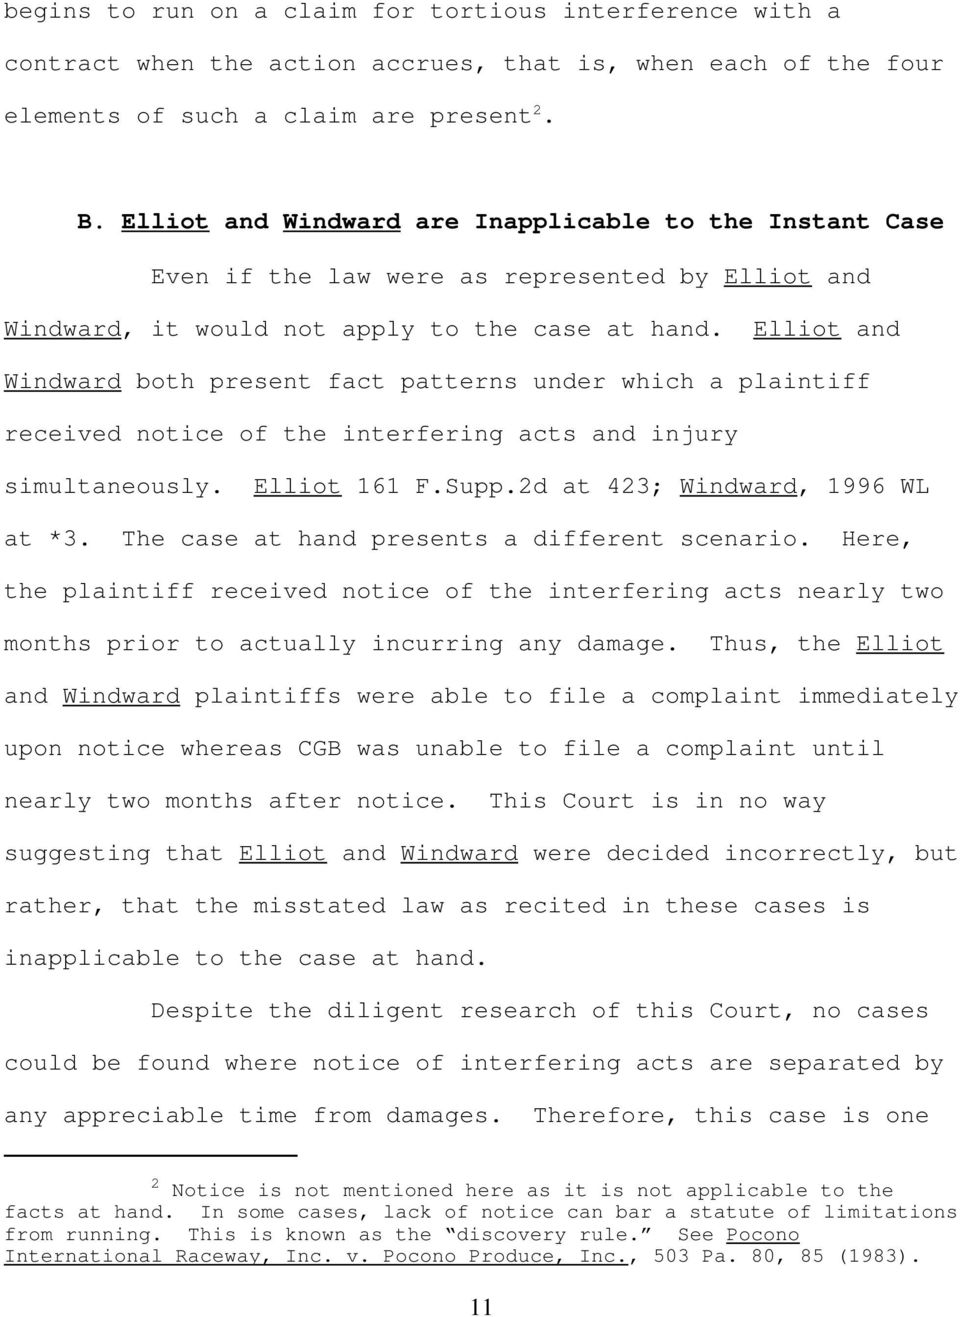 Elliot and Windward both present fact patterns under which a plaintiff received notice of the interfering acts and injury simultaneously. Elliot 161 F.Supp.2d at 423; Windward, 1996 WL at *3.